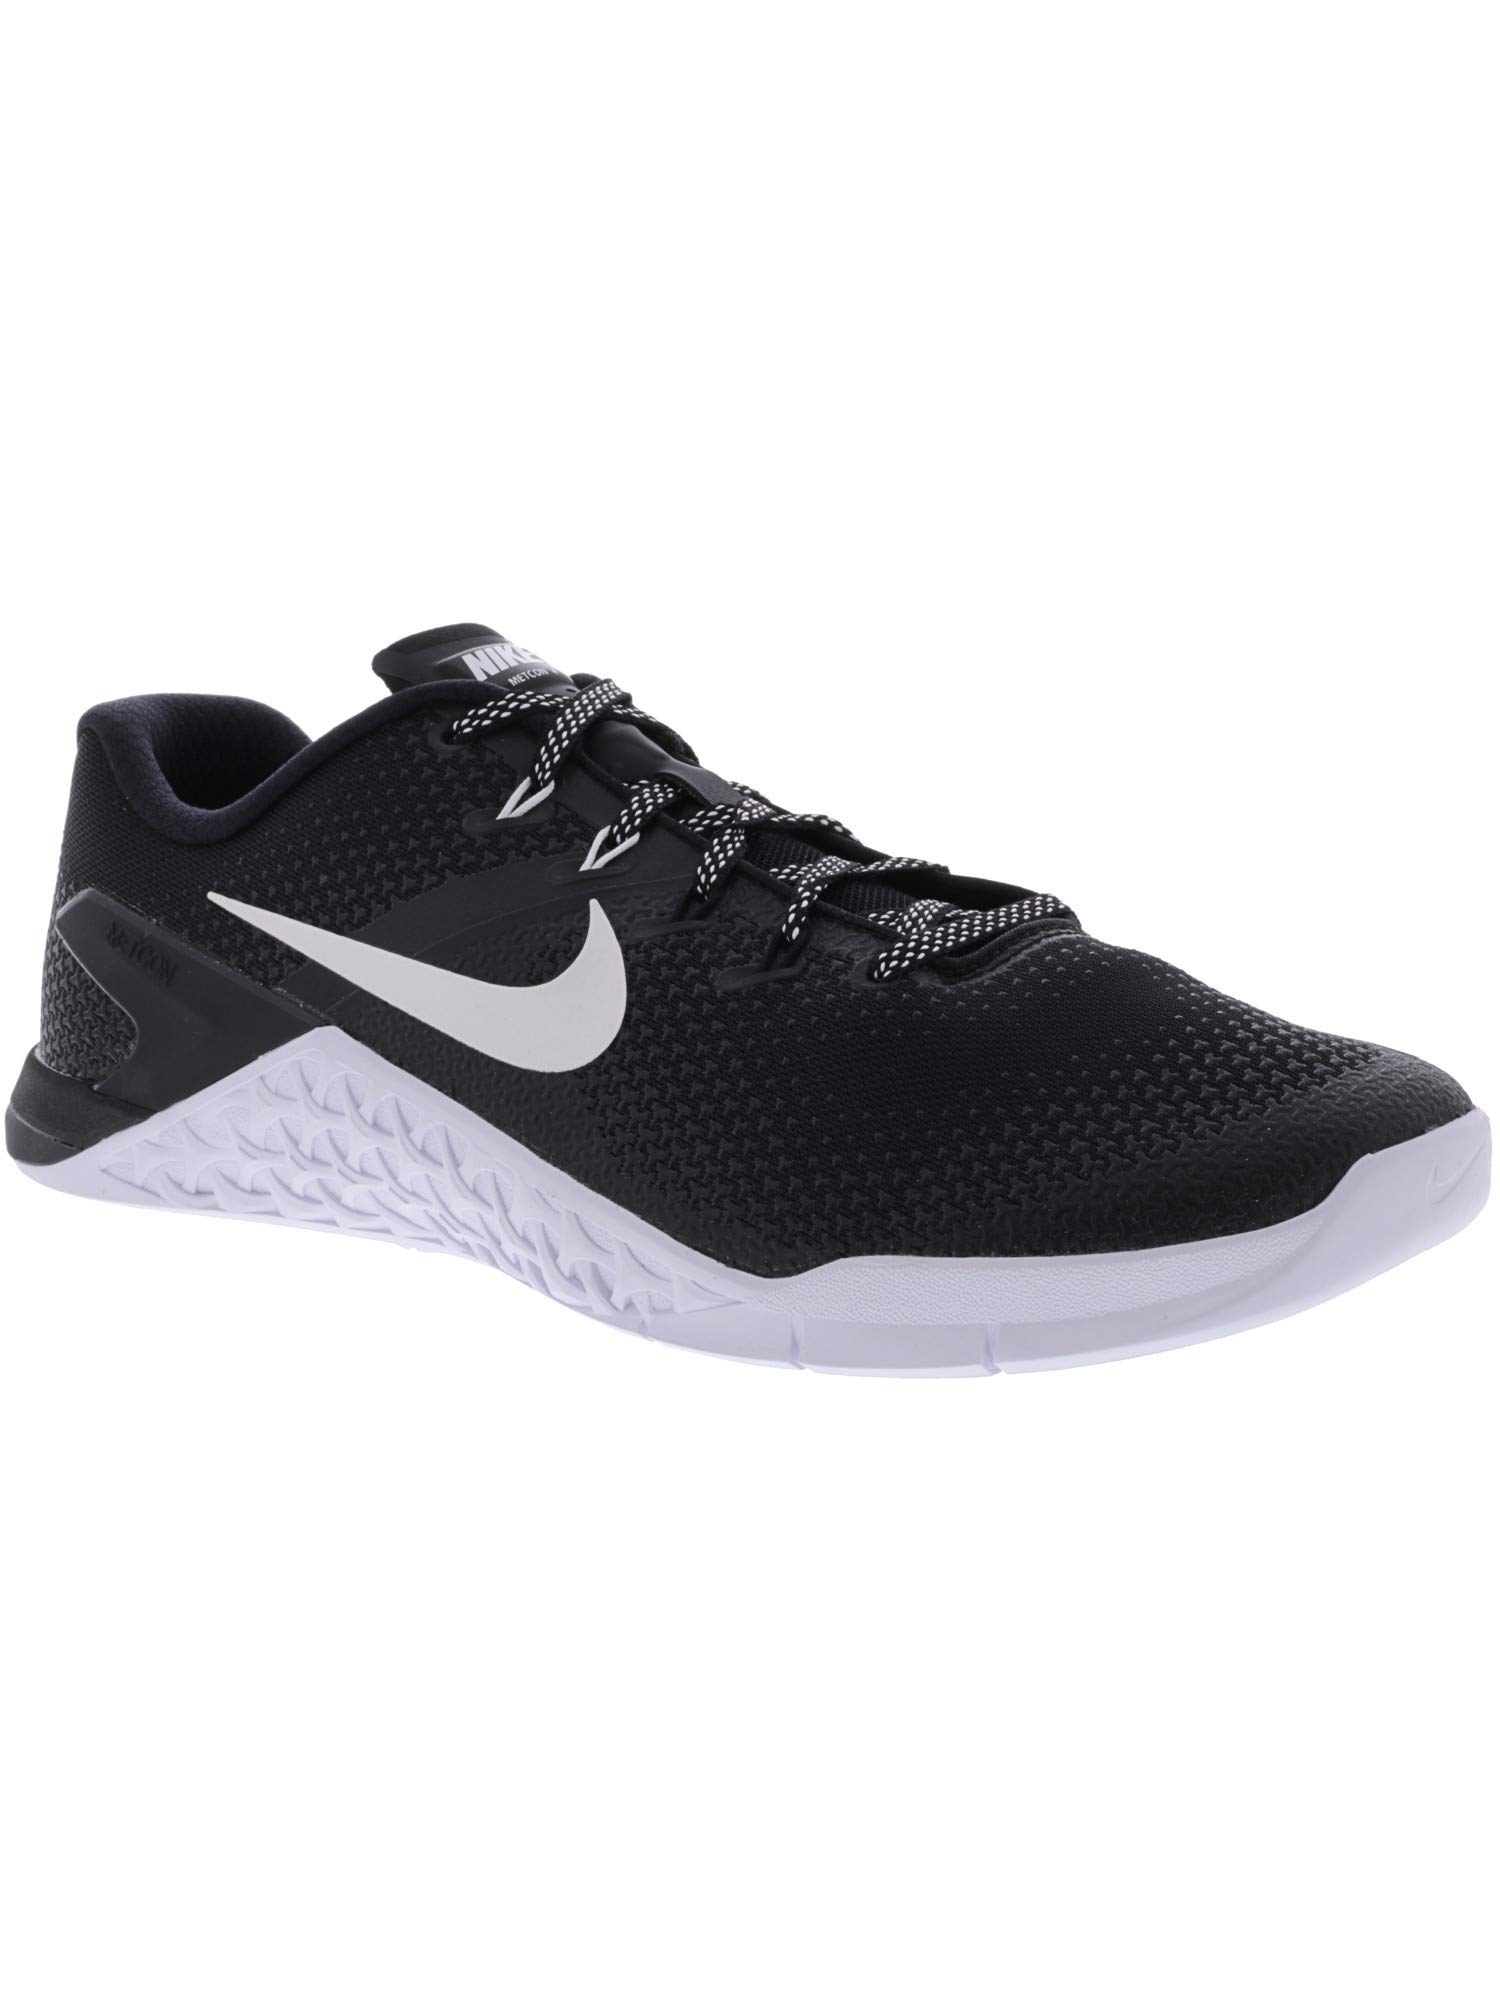 Nike Men's Metcon 4 Black/White Ankle-High Cross Trainer Shoe - 7M by Nike (Image #3)